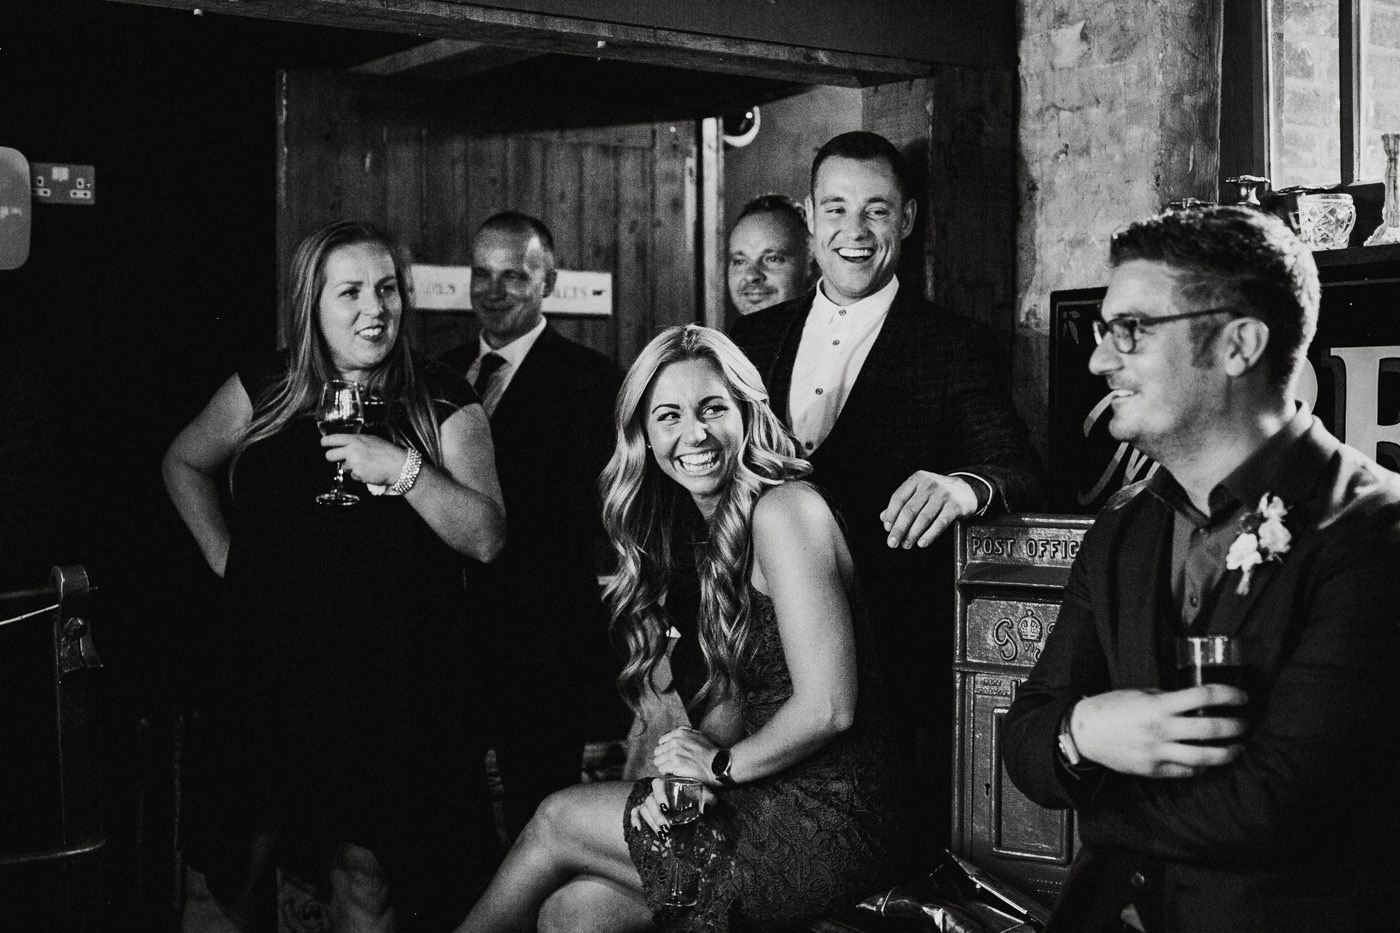 The-bell-in-Ticehurst-pub-kent-wedding-photographer-London-Epic-Love-Story-077